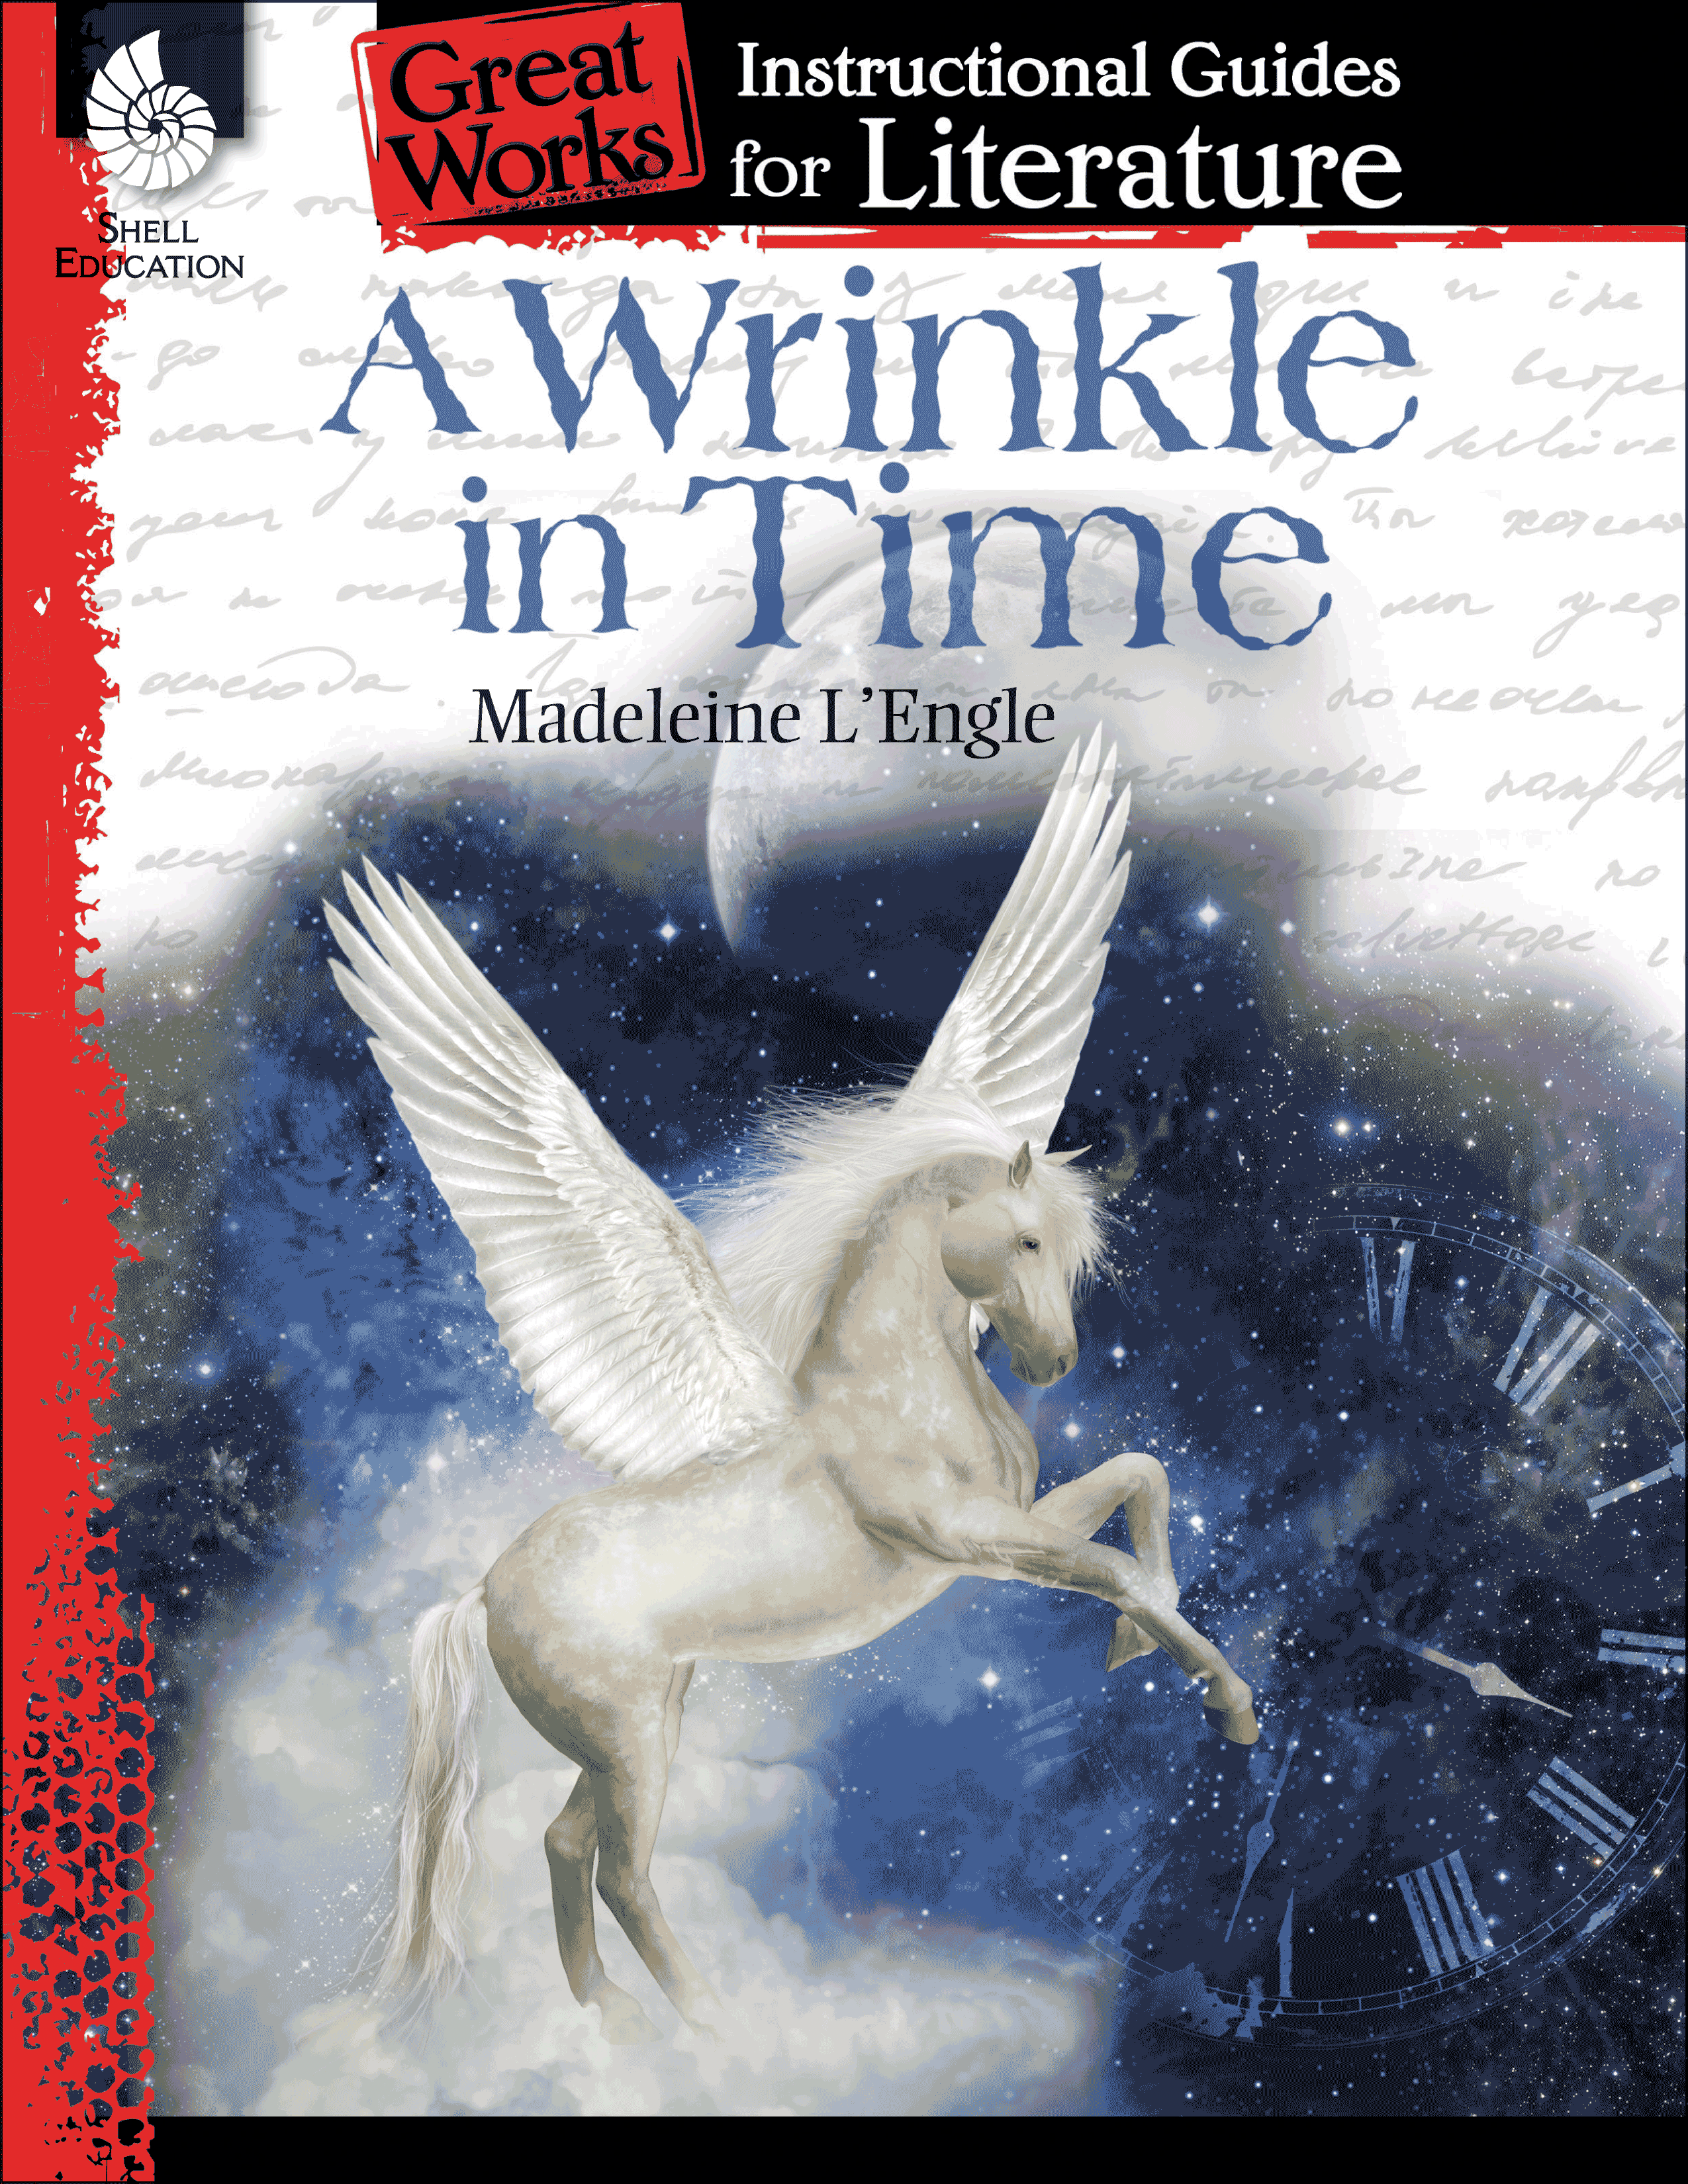 A Wrinkle in Time - TeachingBooks.net | Author & Book ...